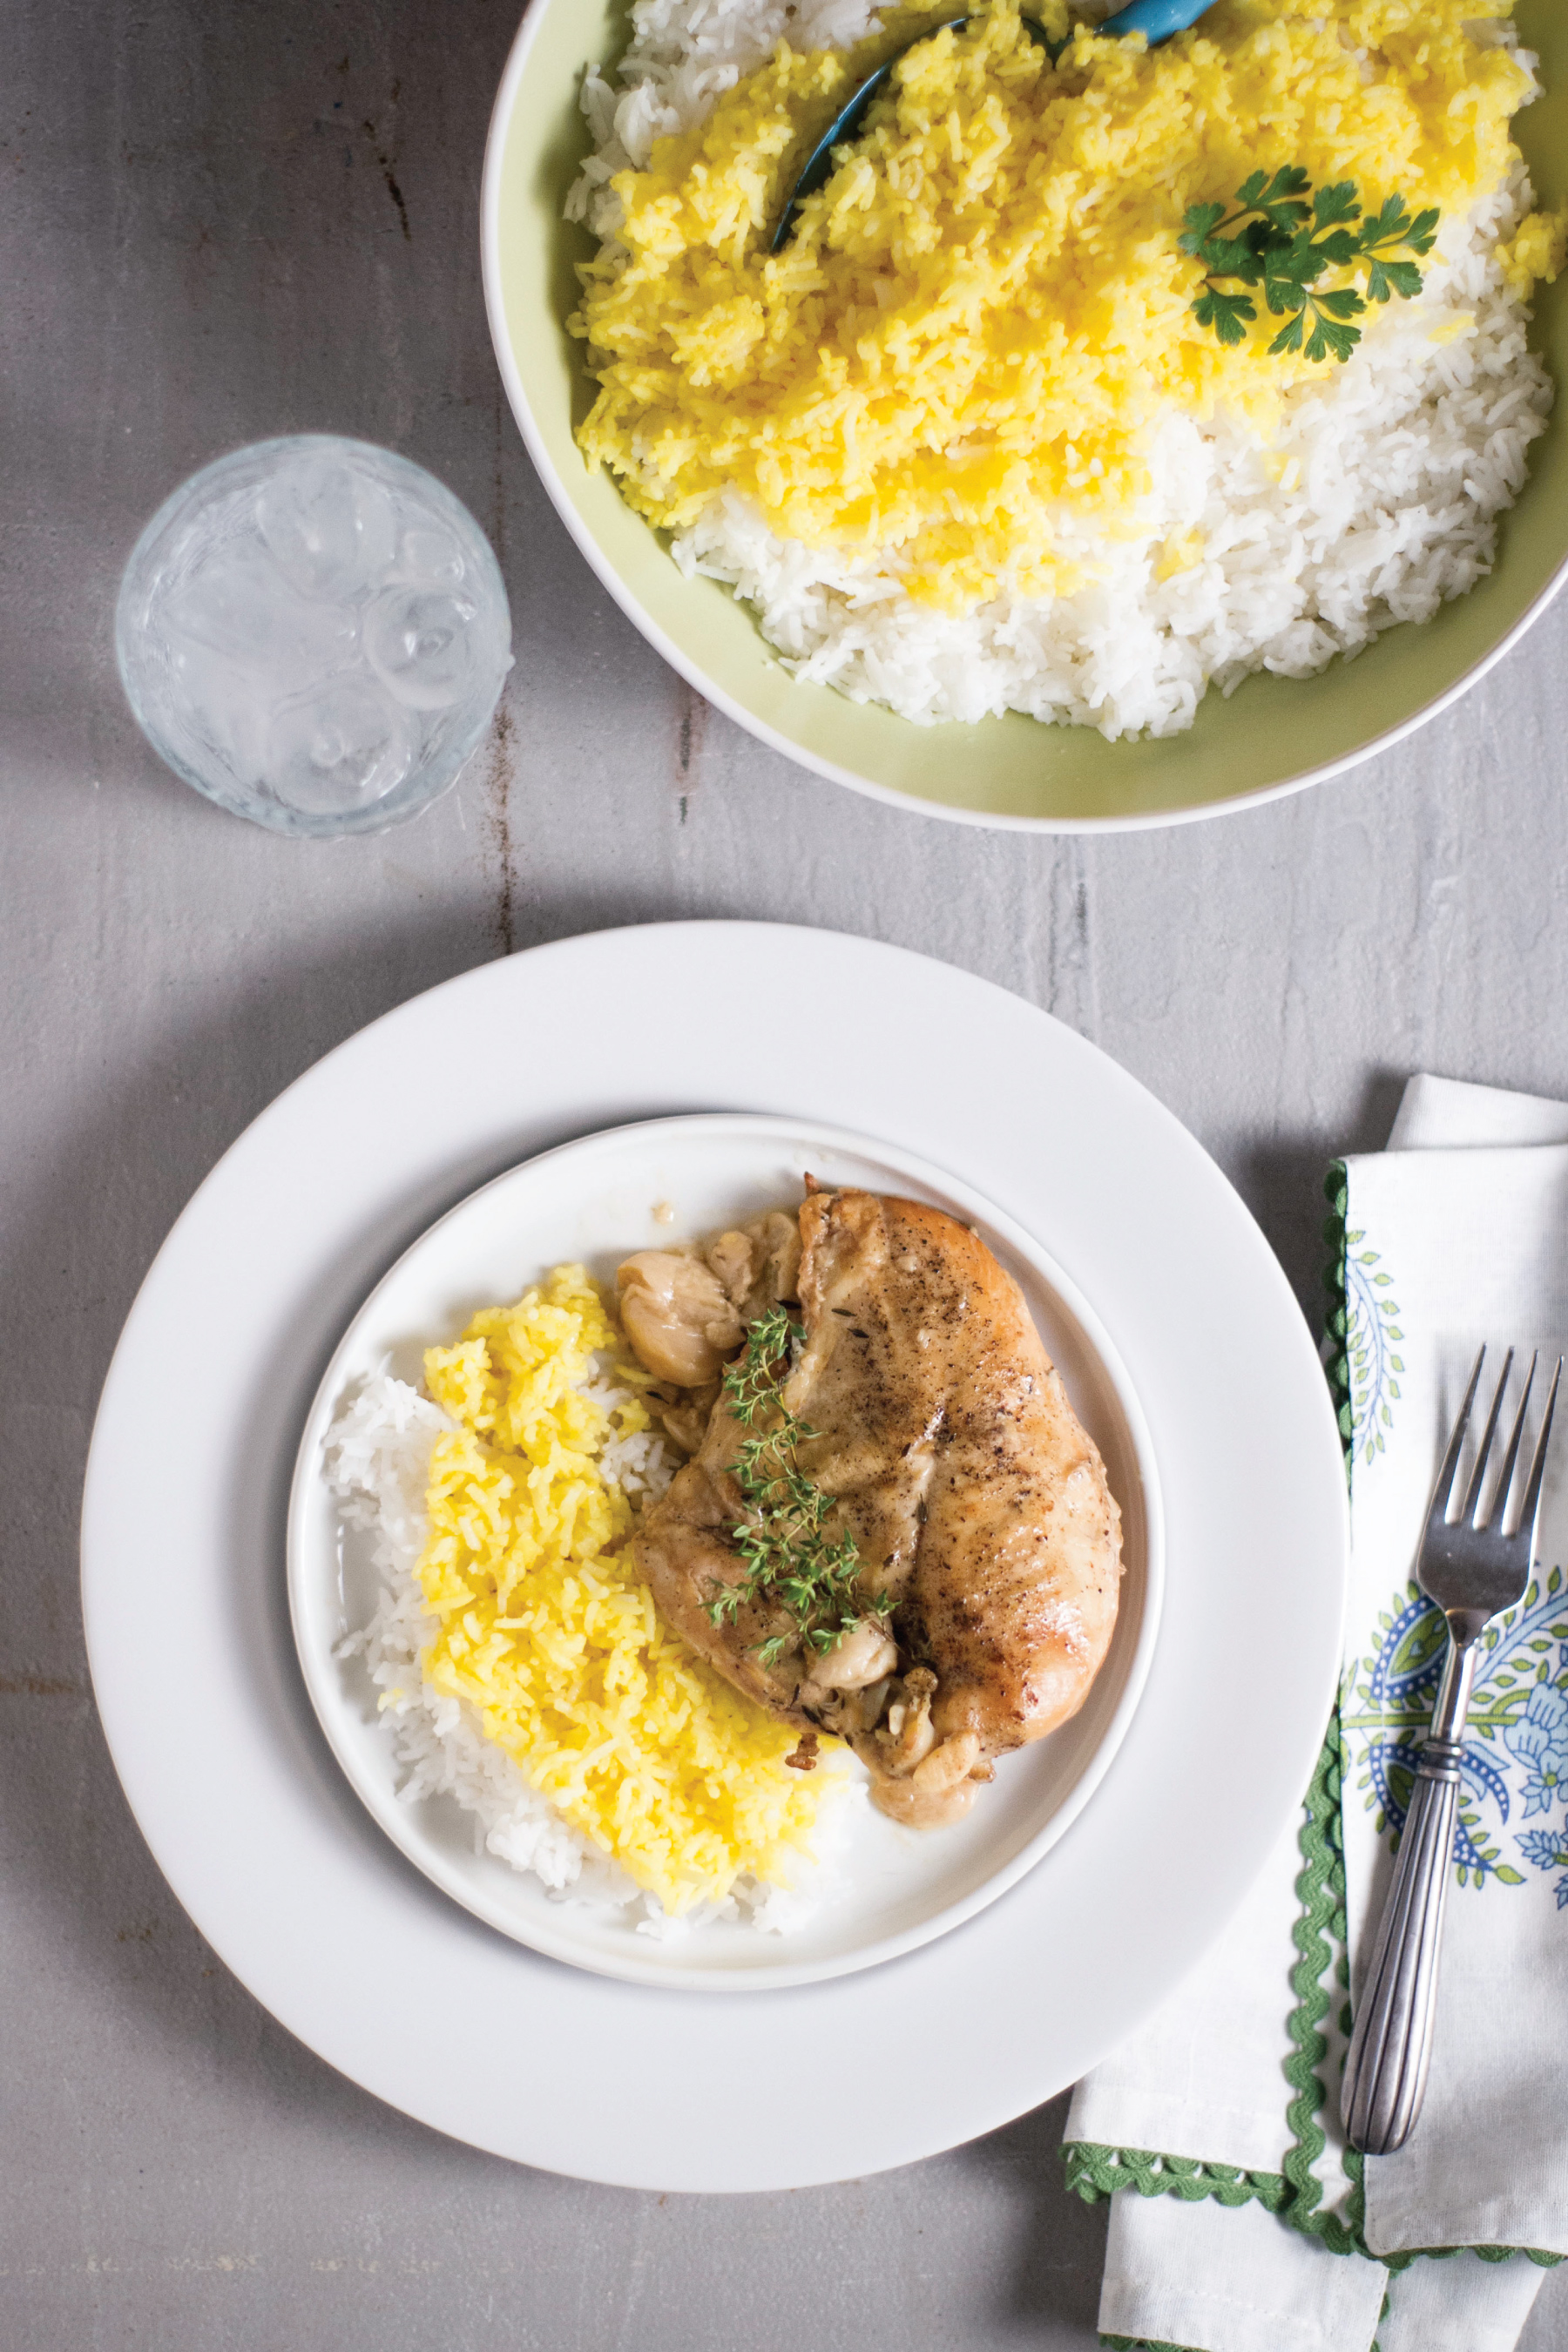 Slow-Cooked 40 Clove Garlic Chicken from Sam Henderson of Today's Nest